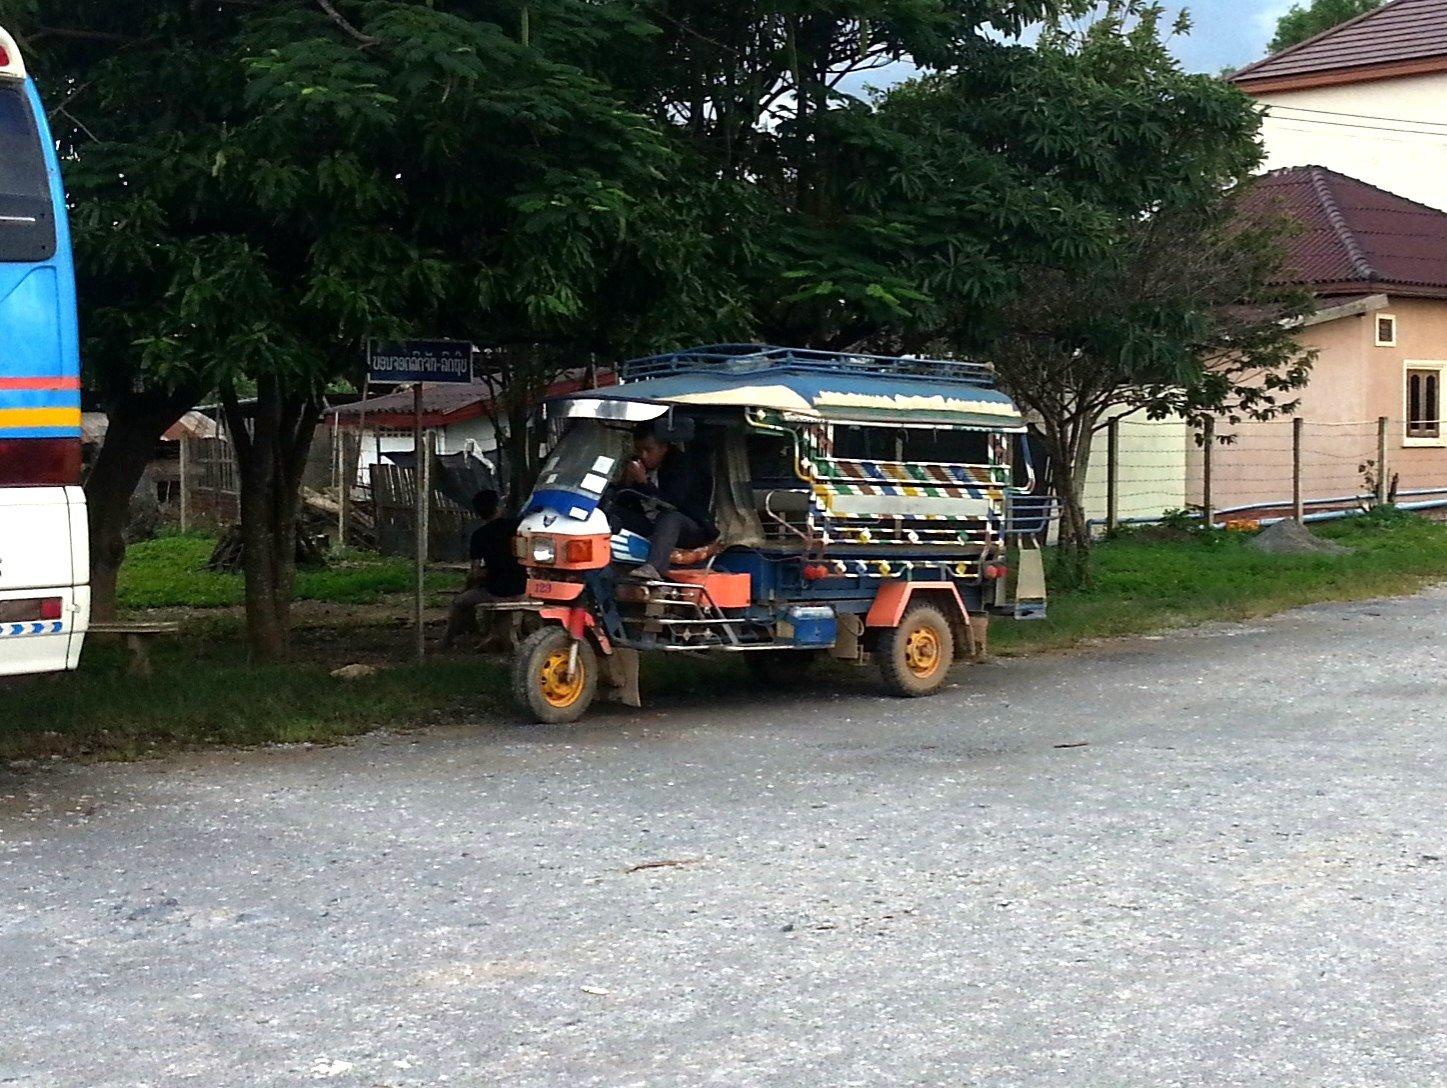 Tuk tuk at Xiengkhouang Bus Station